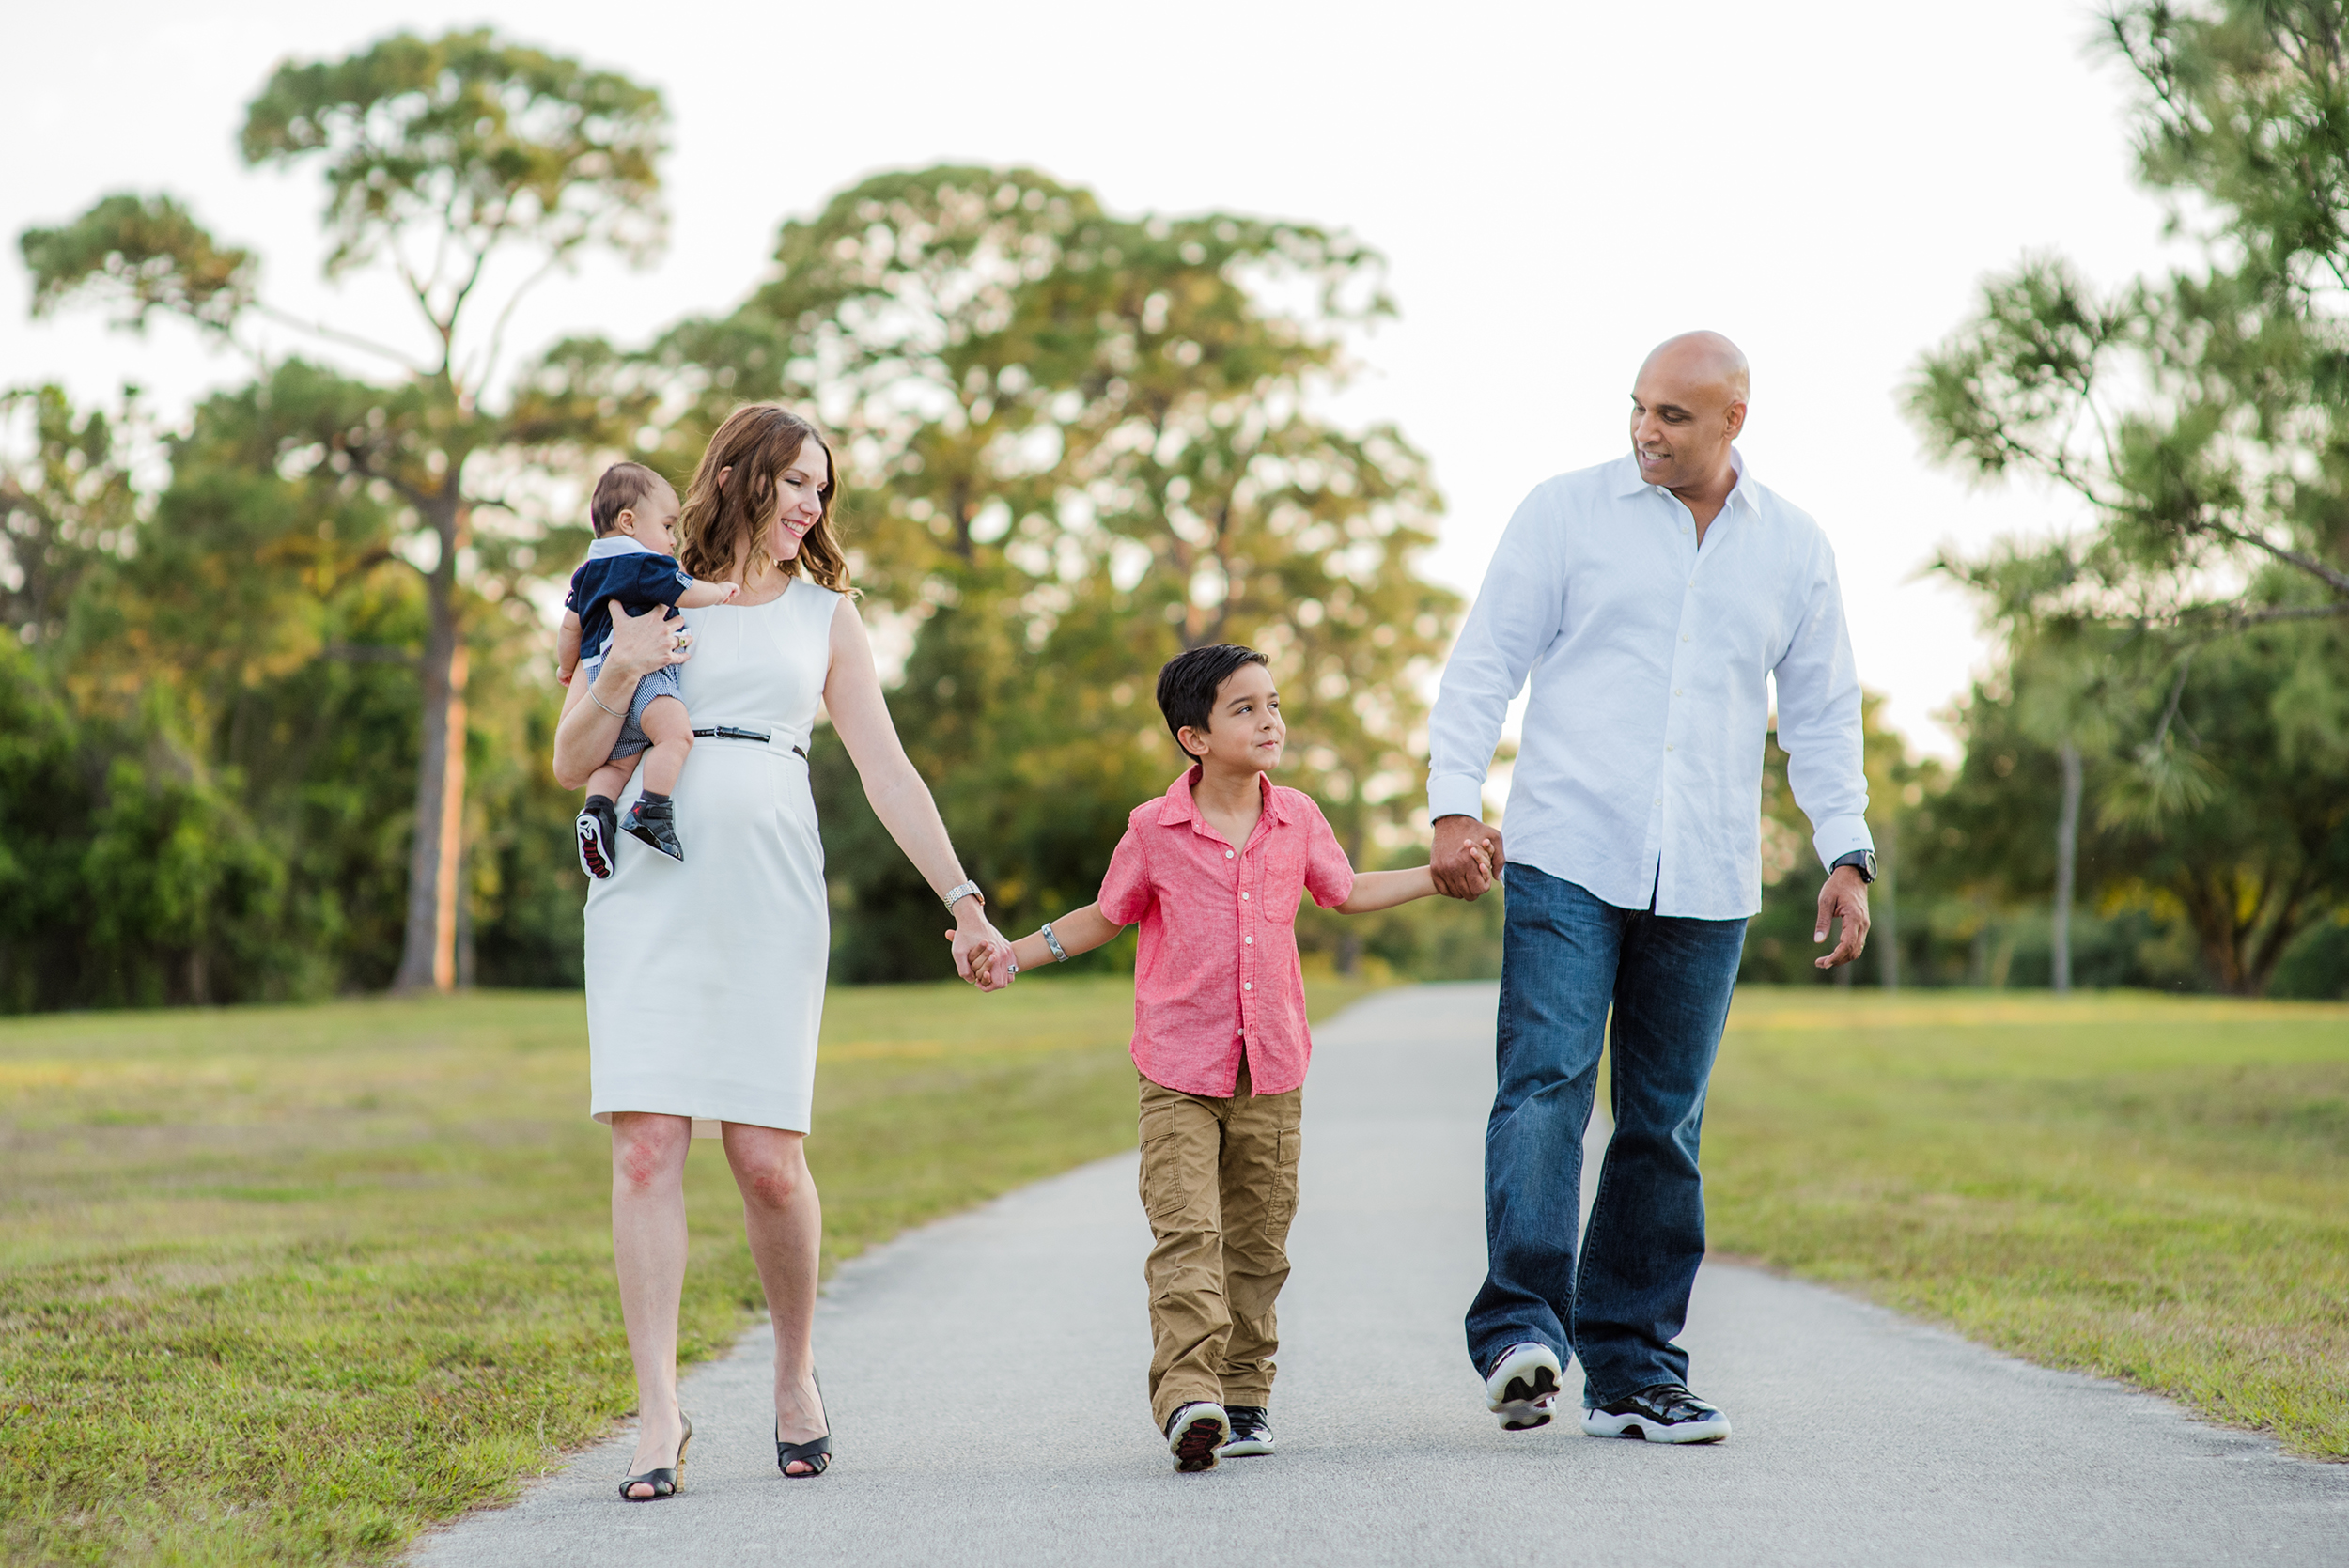 family-photography-south-florida-alison-frank-photography_29.jpg